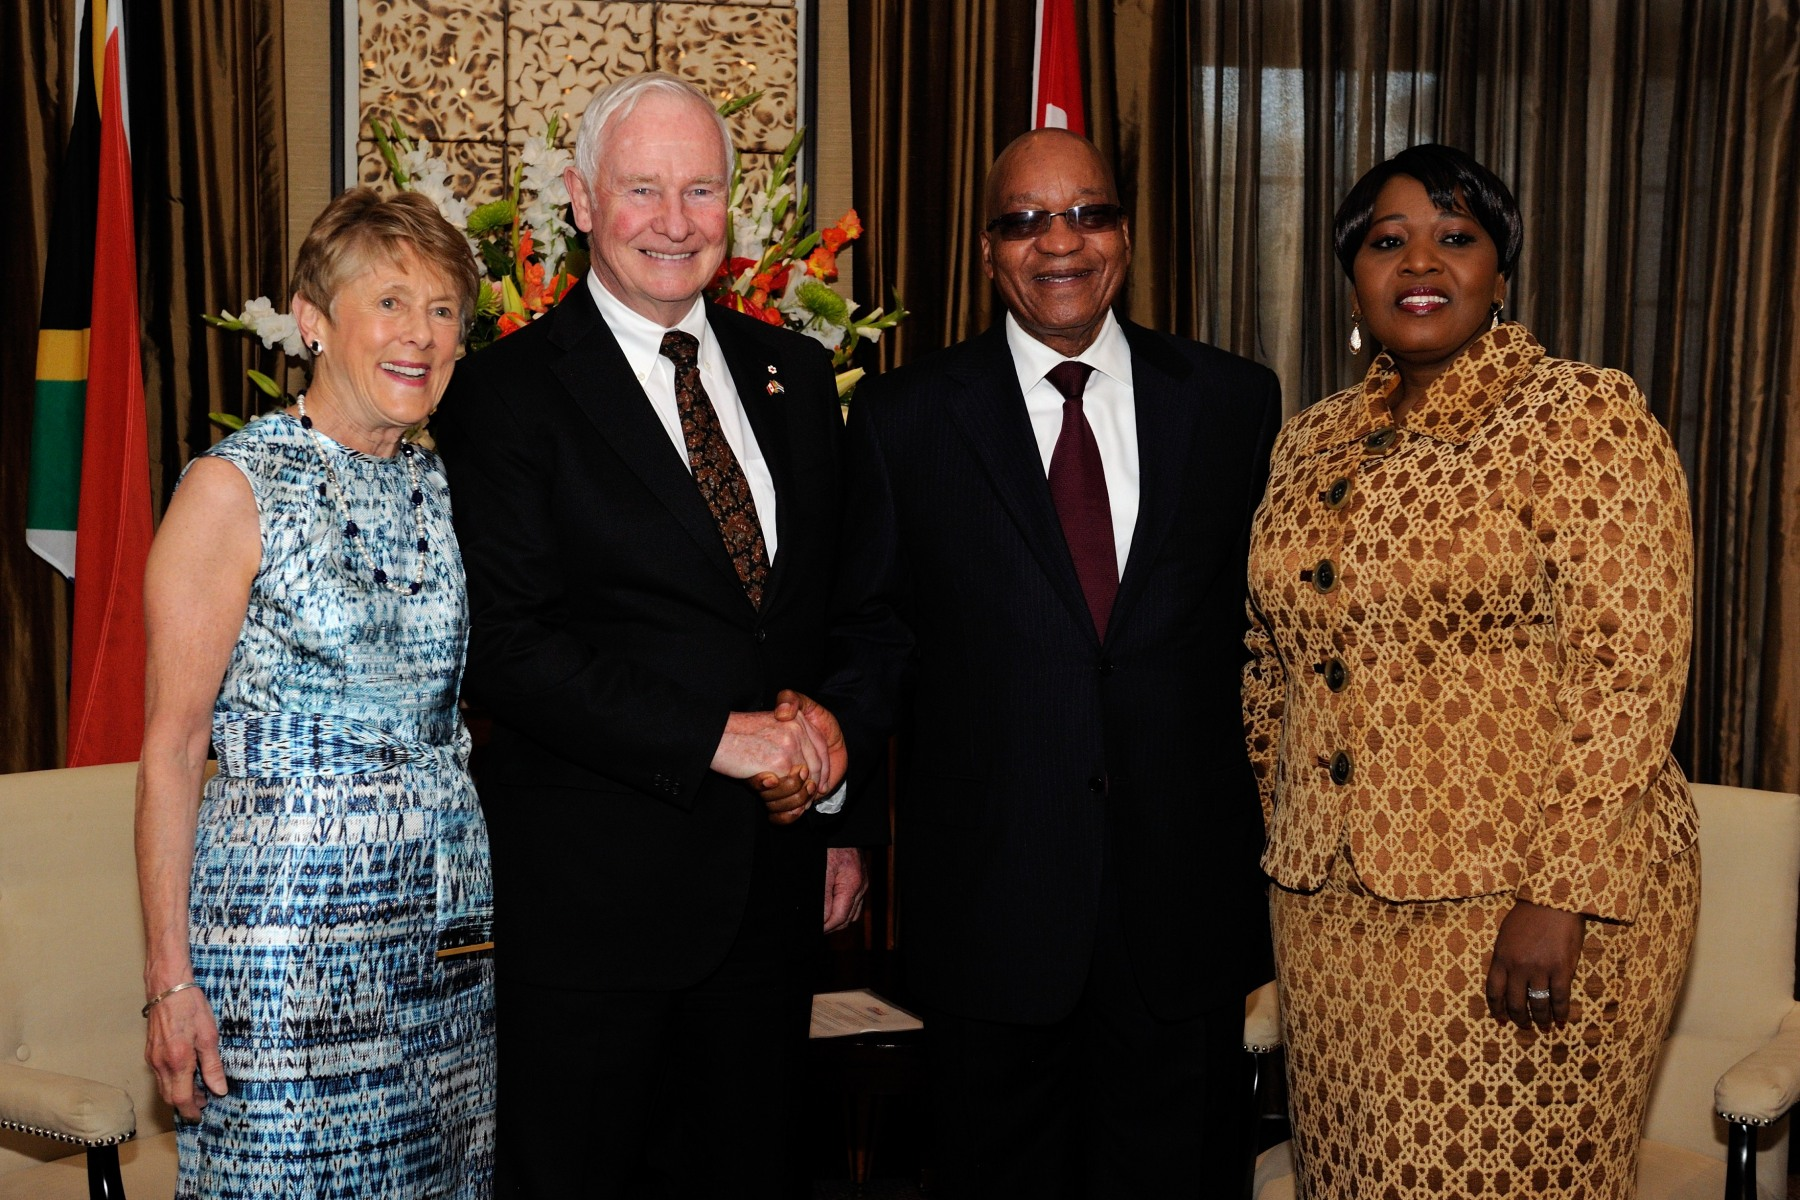 During the courtesy call, Their Excellencies met with the President and his spouse, Mrs. Bongi Ngema-Zuma. They discussed the progress made in South Africa since the end of apartheid to build a democratic and inclusive society.